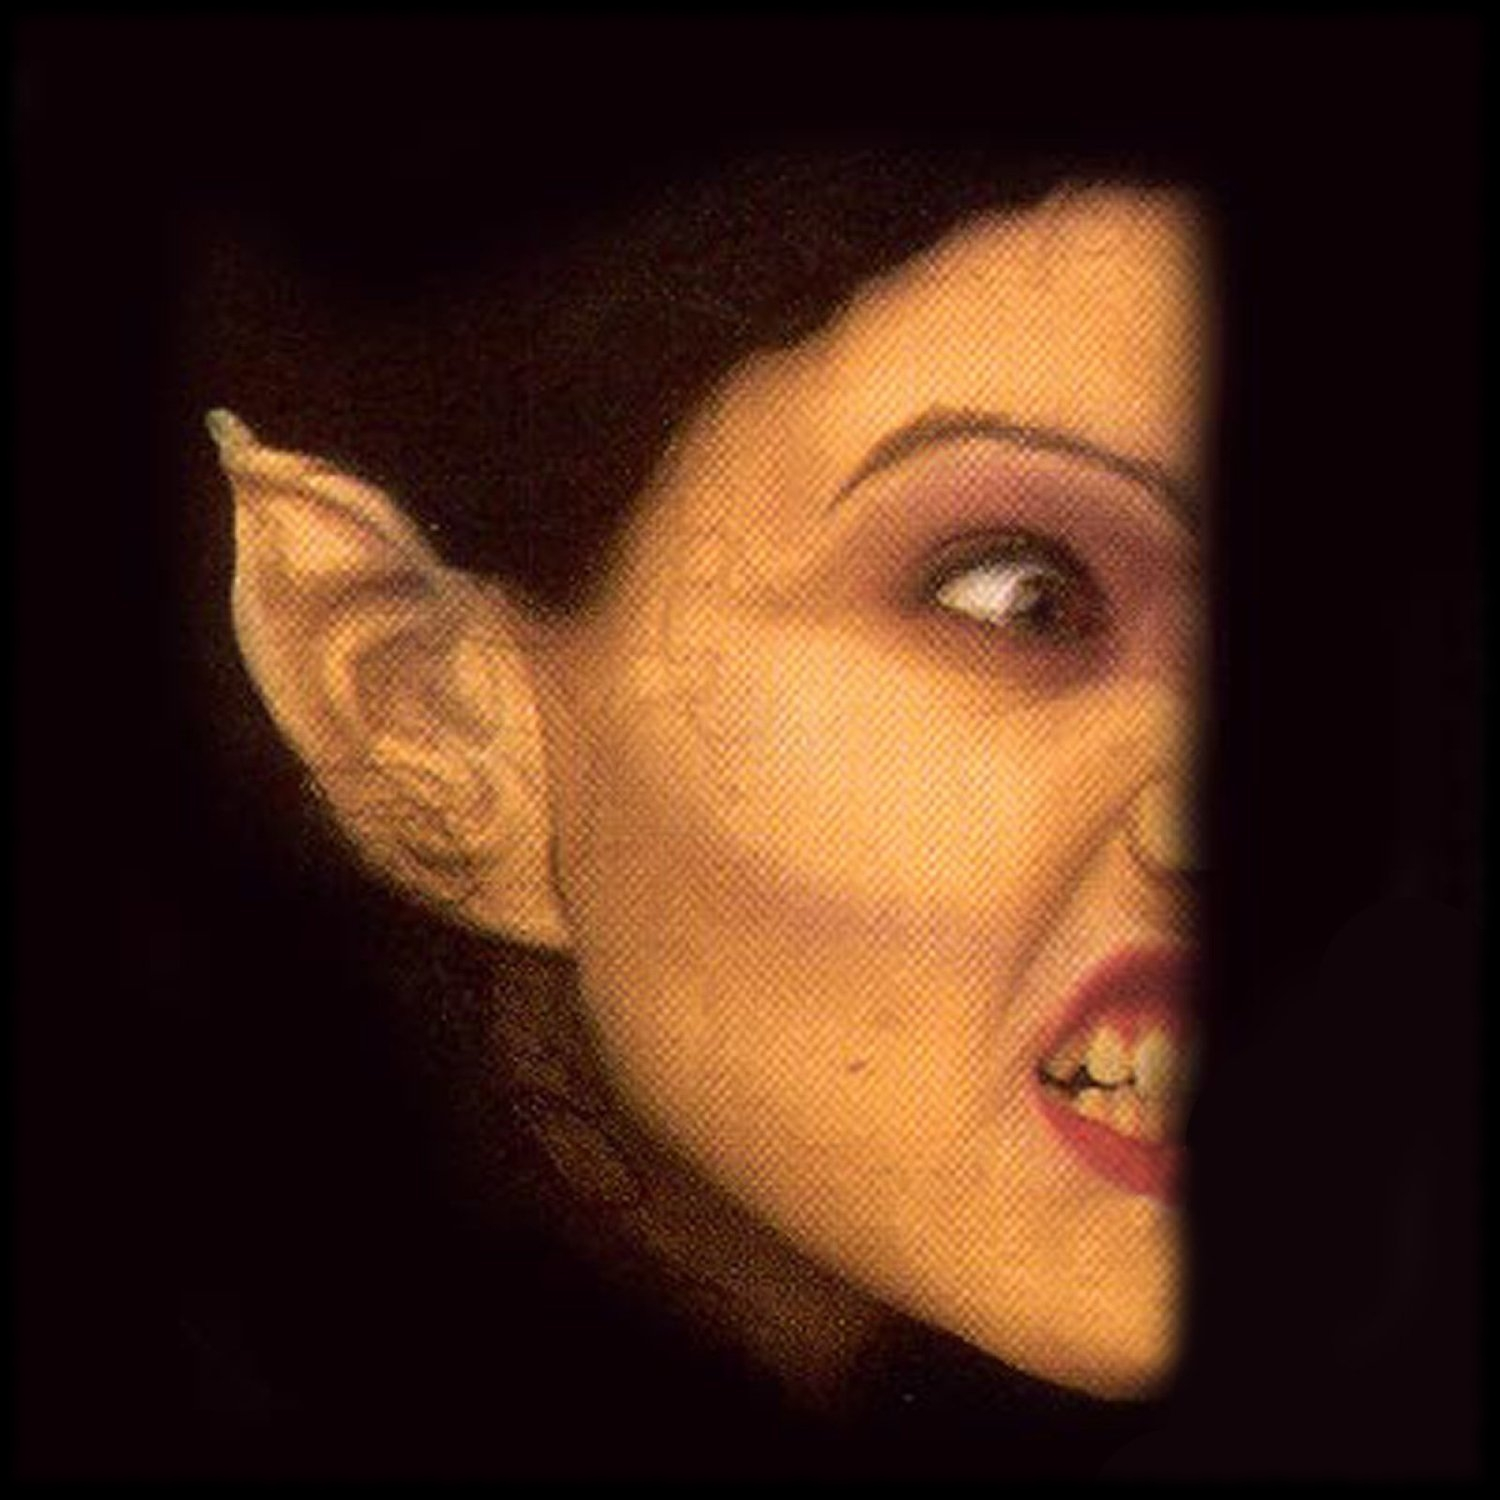 Vampire Ears Halloween Costume Accessory